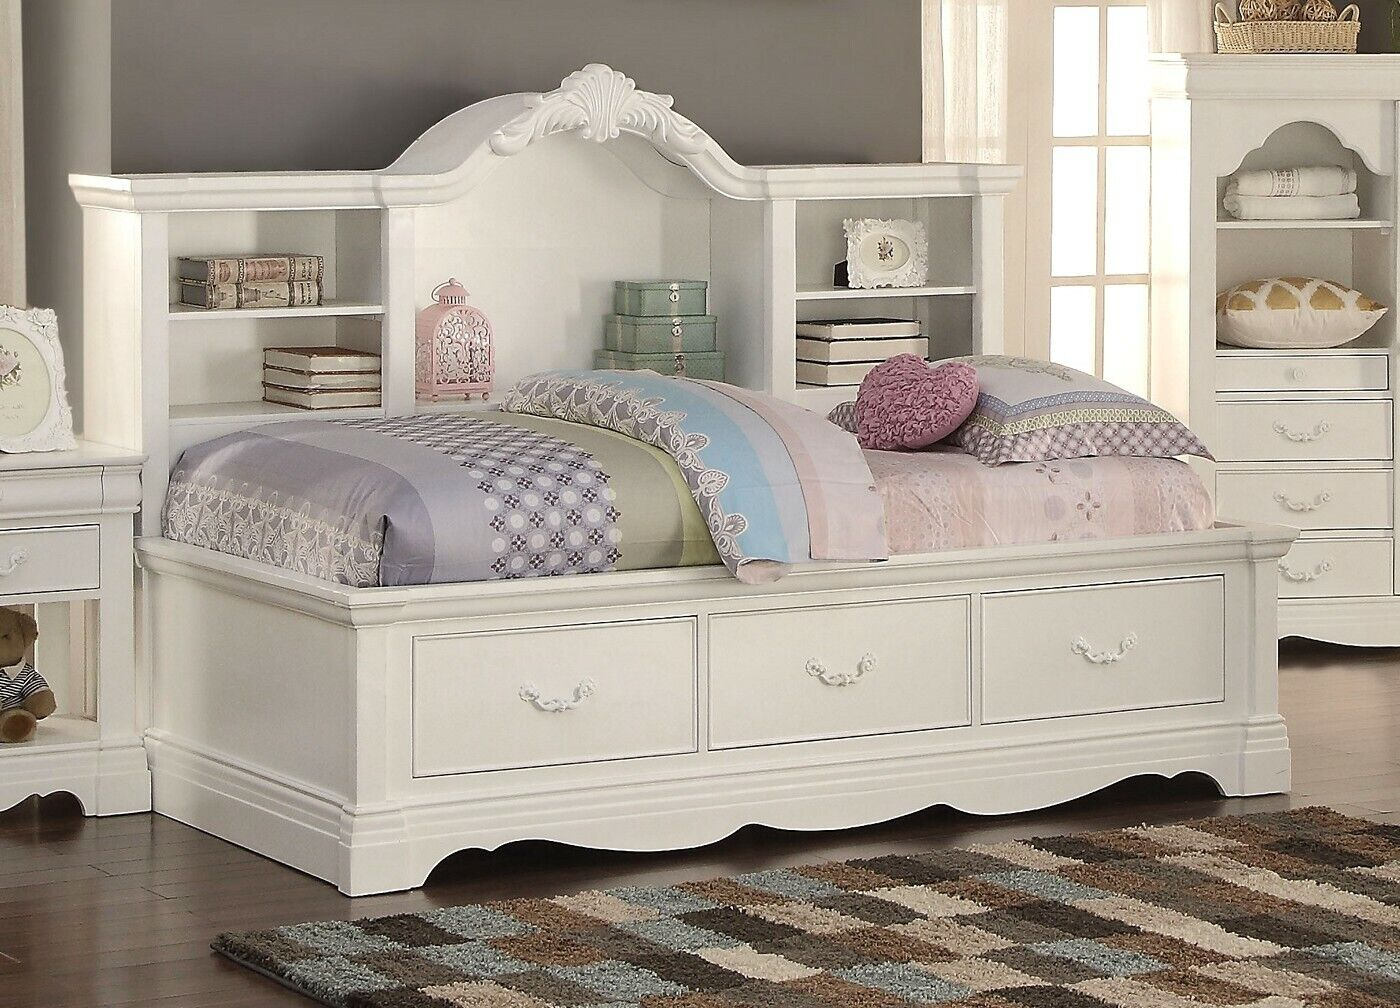 - Yuna Kids Classic Youth Twin Daybed W/ Storage In White Finish